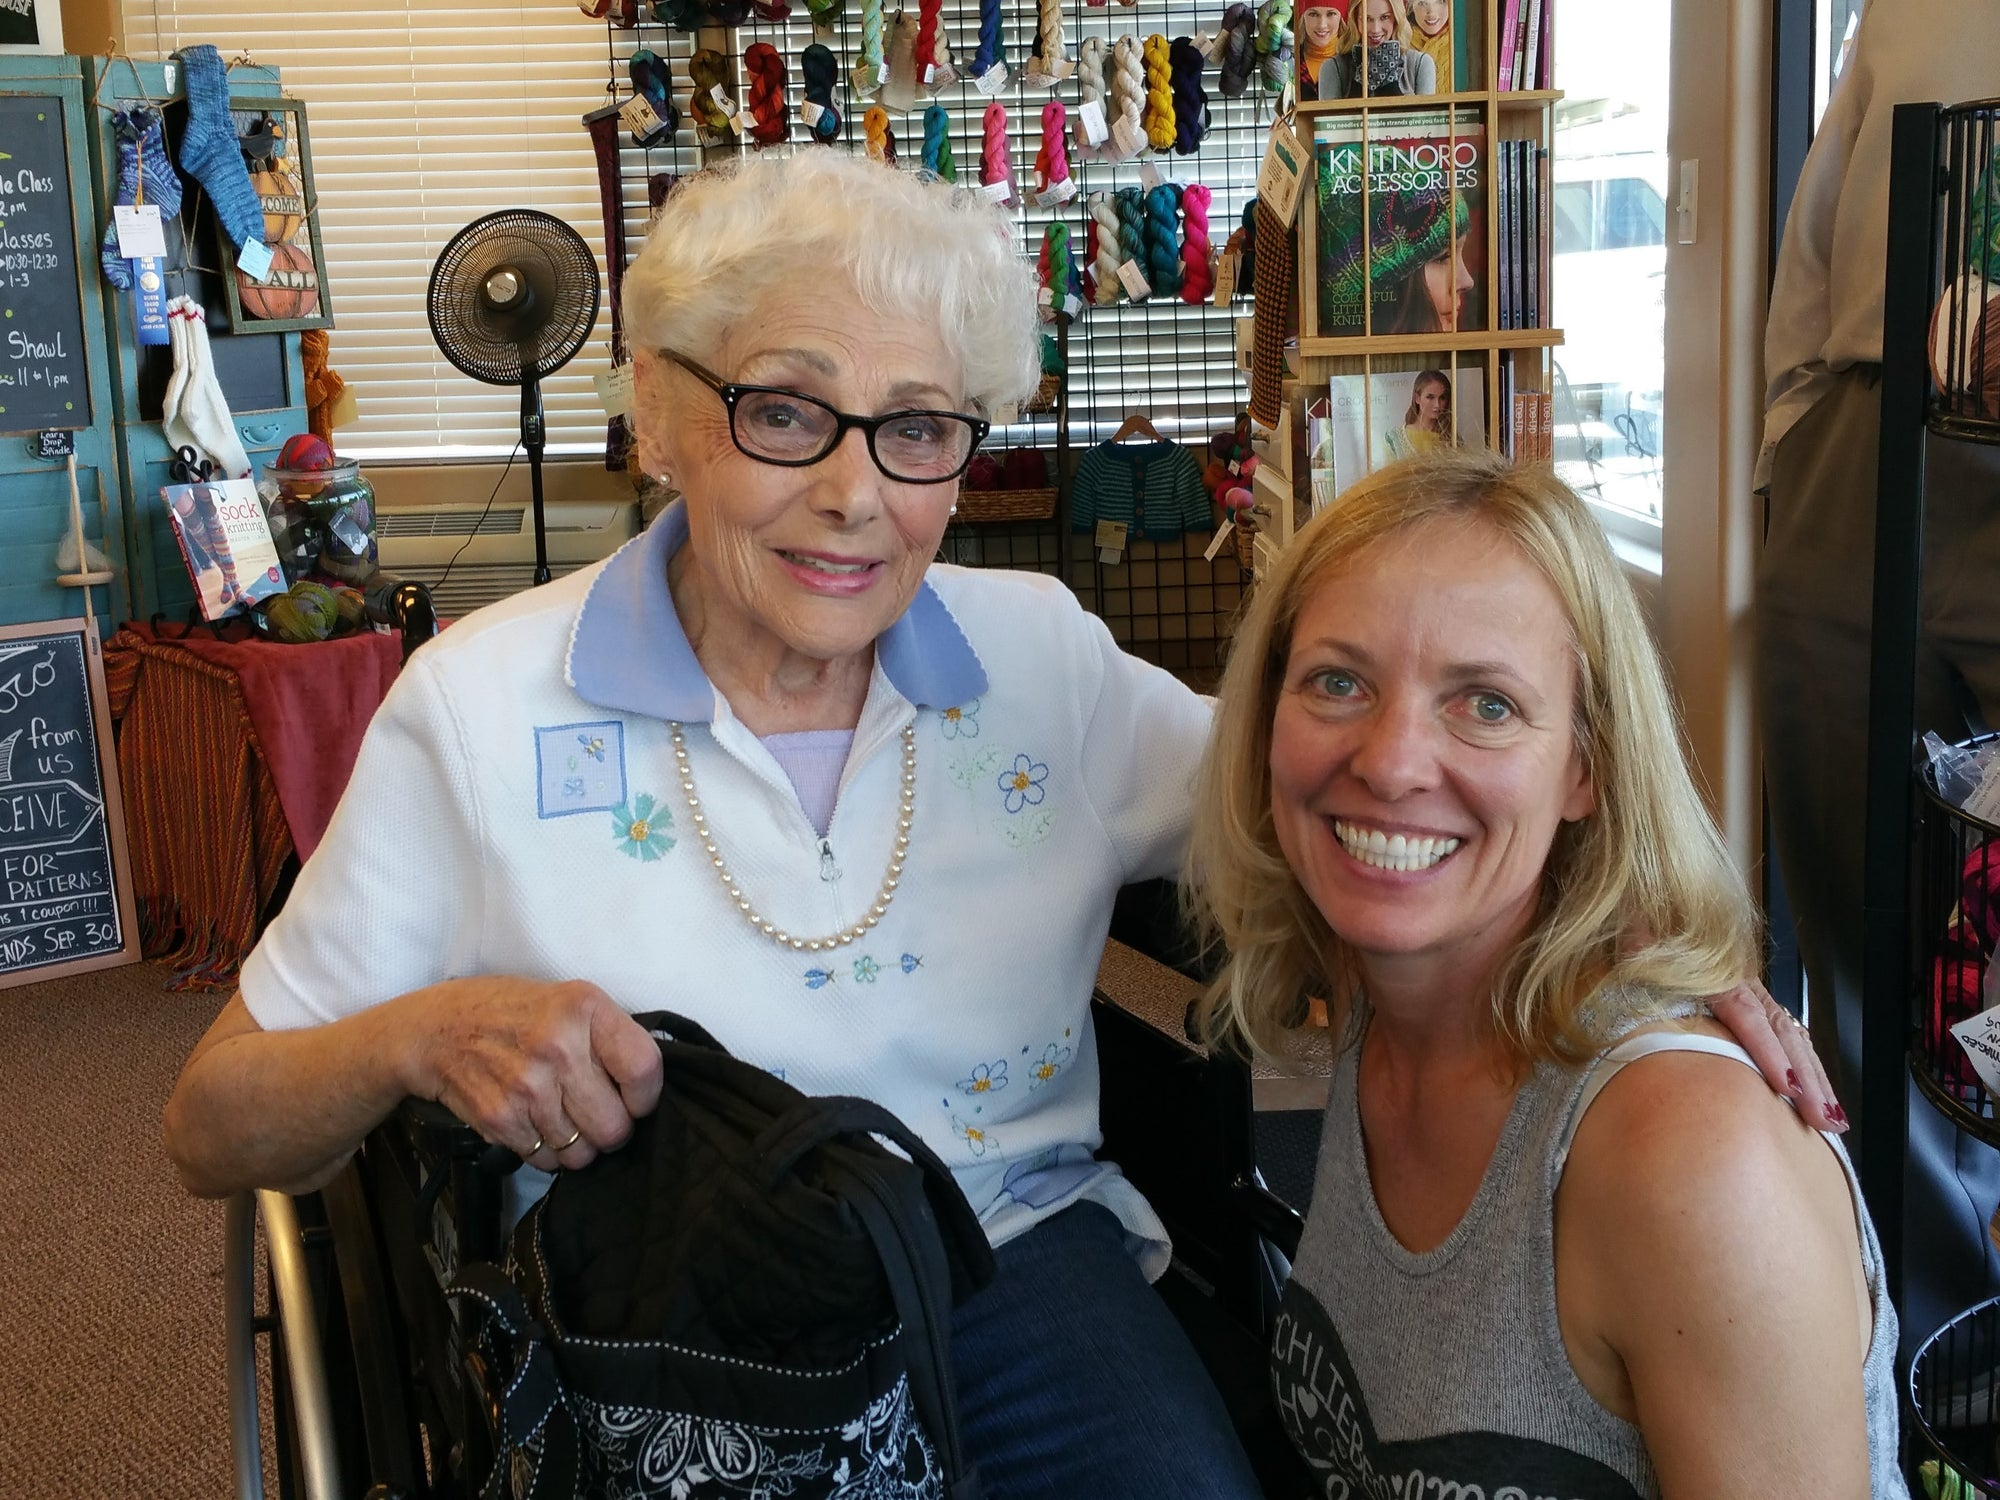 Knitting Helps Mentor a Healthy Lifestyle